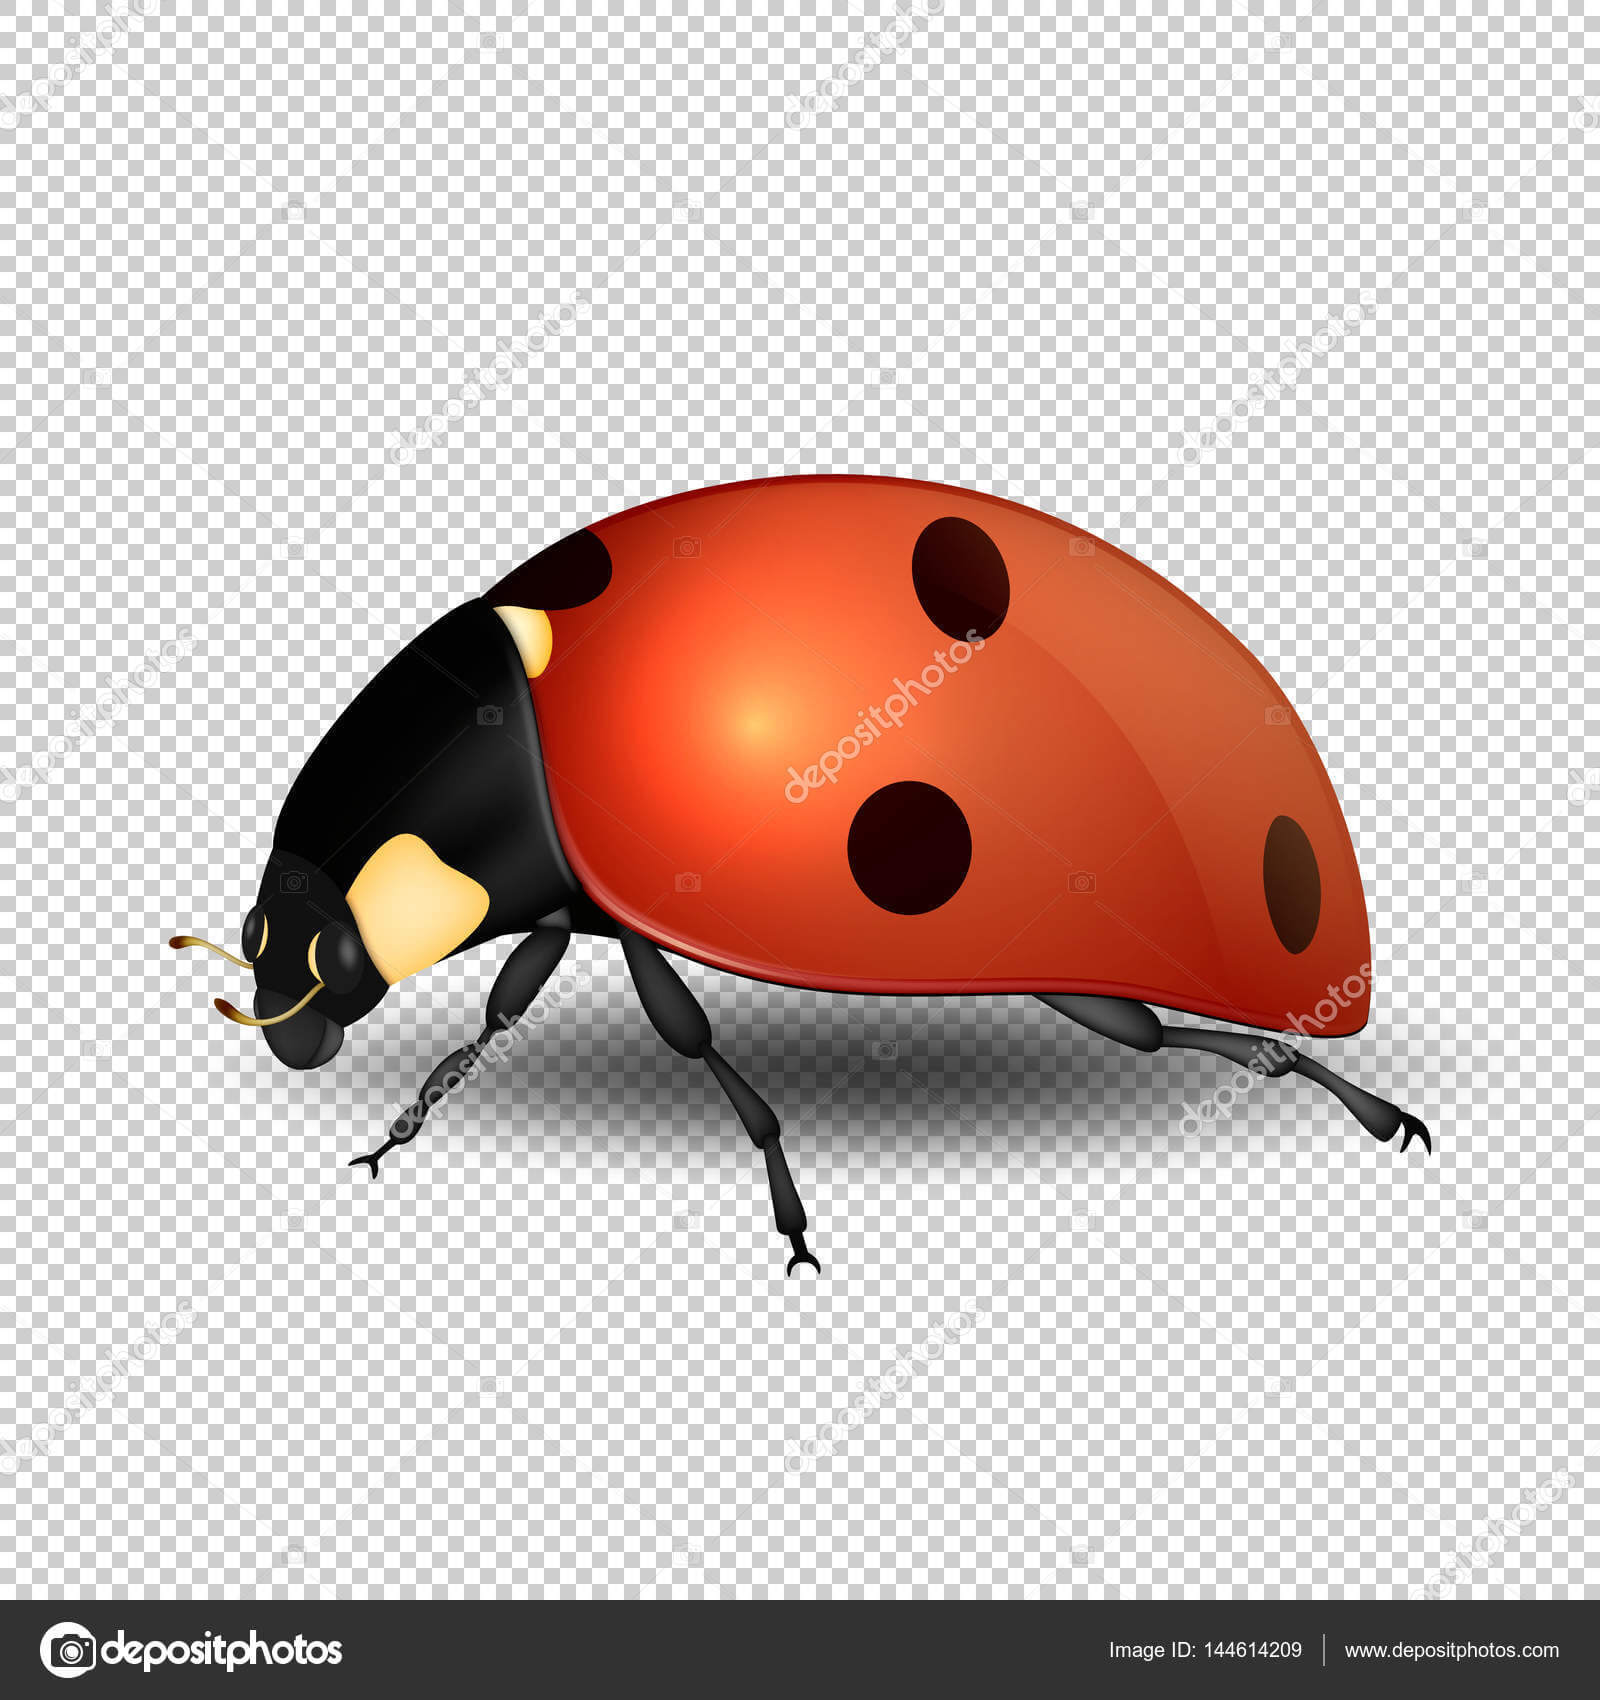 Blank Ladybug Template | Vector Close Up Realistic Ladybug For Blank Ladybug Template